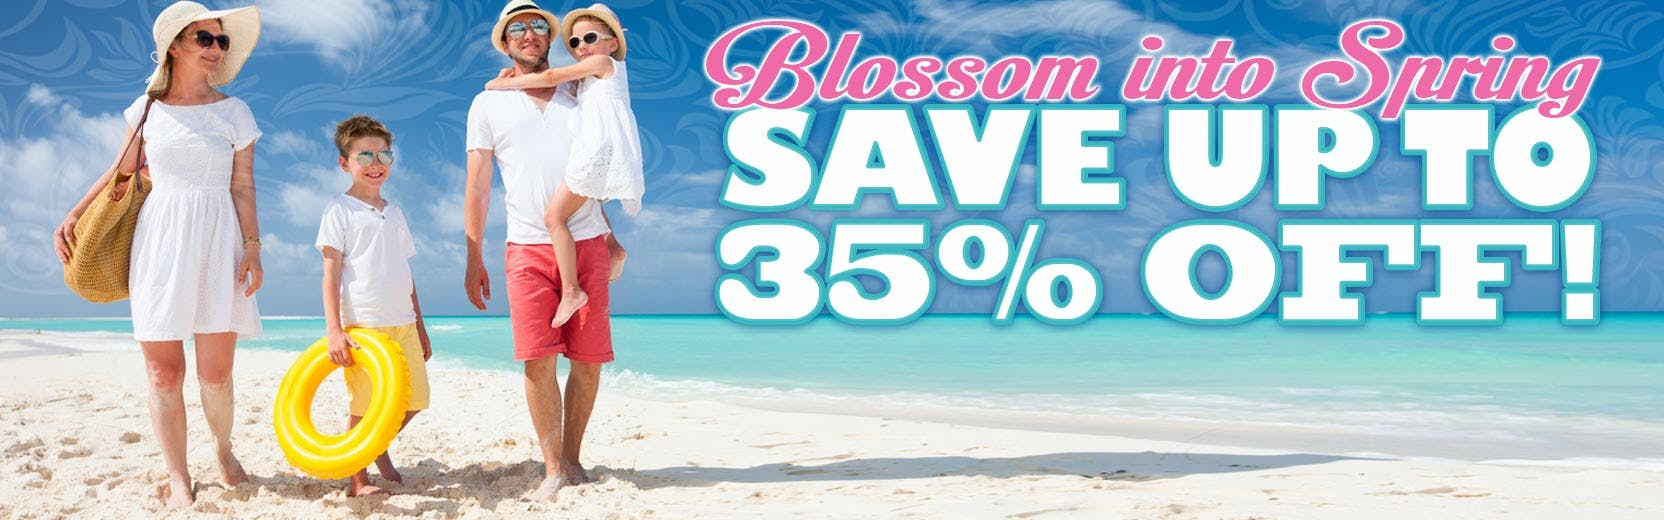 Save up to 35% off spring in Myrtle Beach